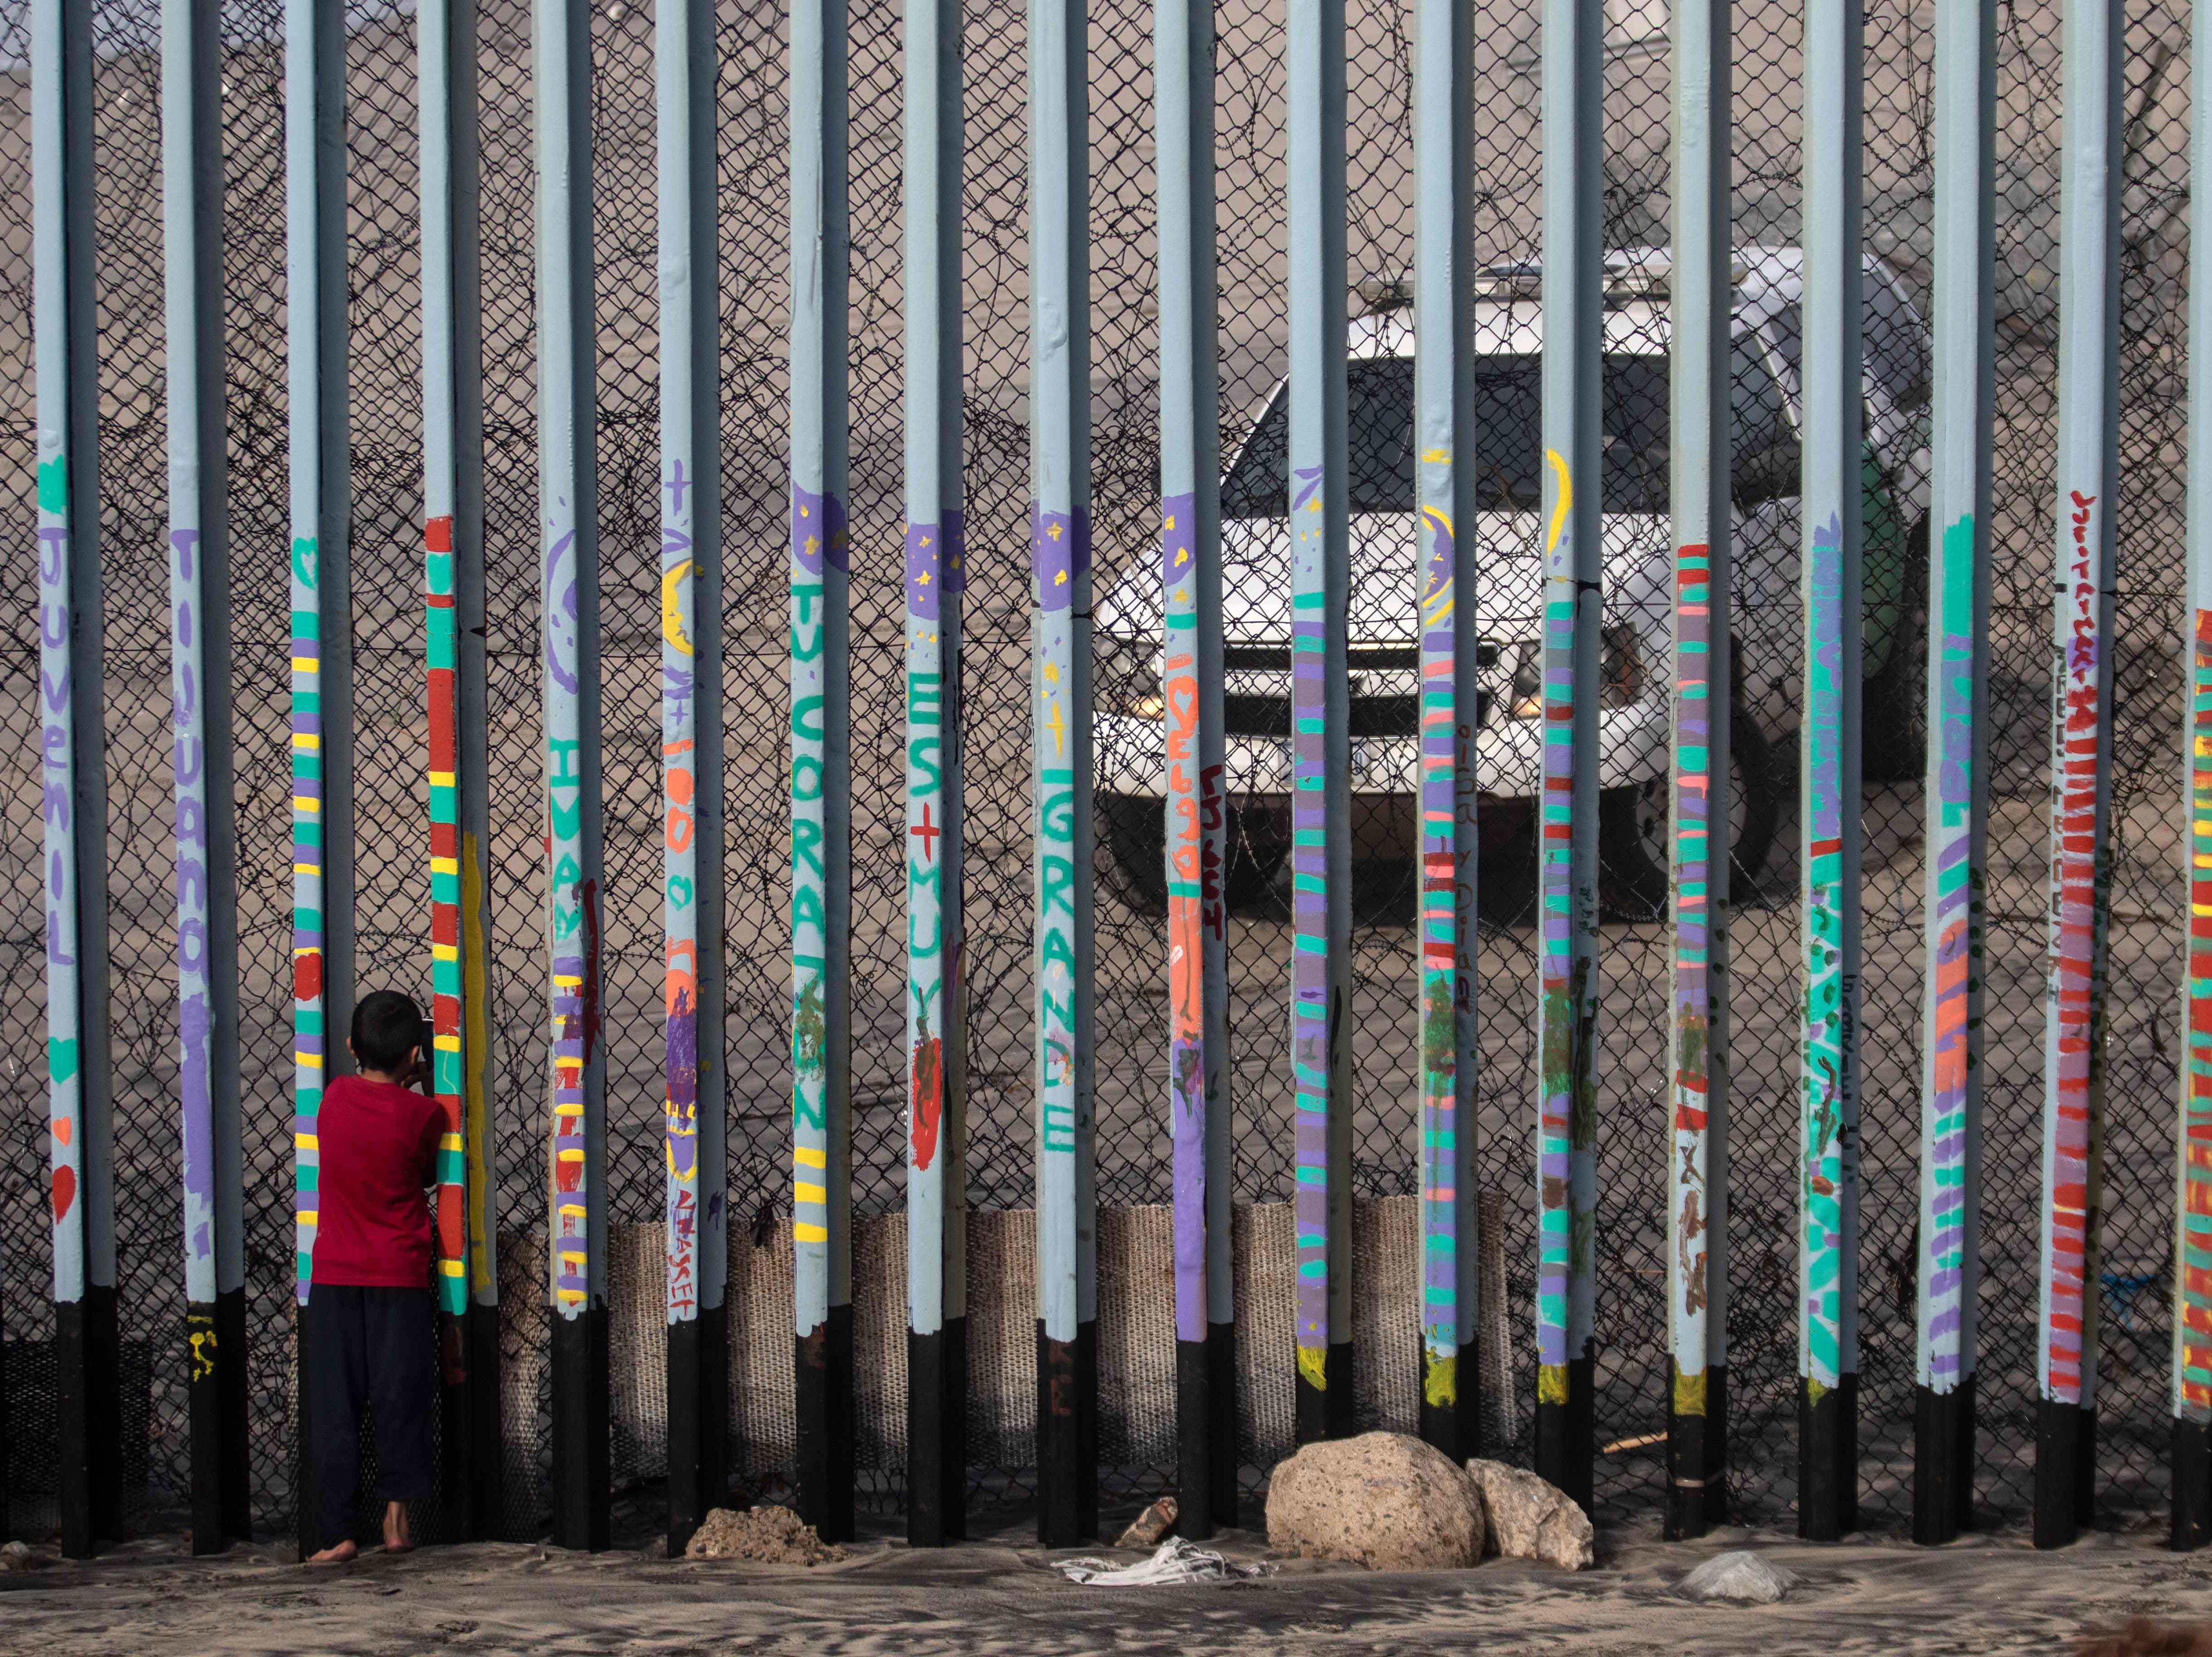 A boy looks at US border patrol guards through the US-Mexico border fence, in Tijuana, in Baja California State, Mexico, on Jan. 18, 2019. A new caravan of Central American migrants trying to reach the United States made its way across Guatemala Thursday, with the first members crossing into southern Mexico.